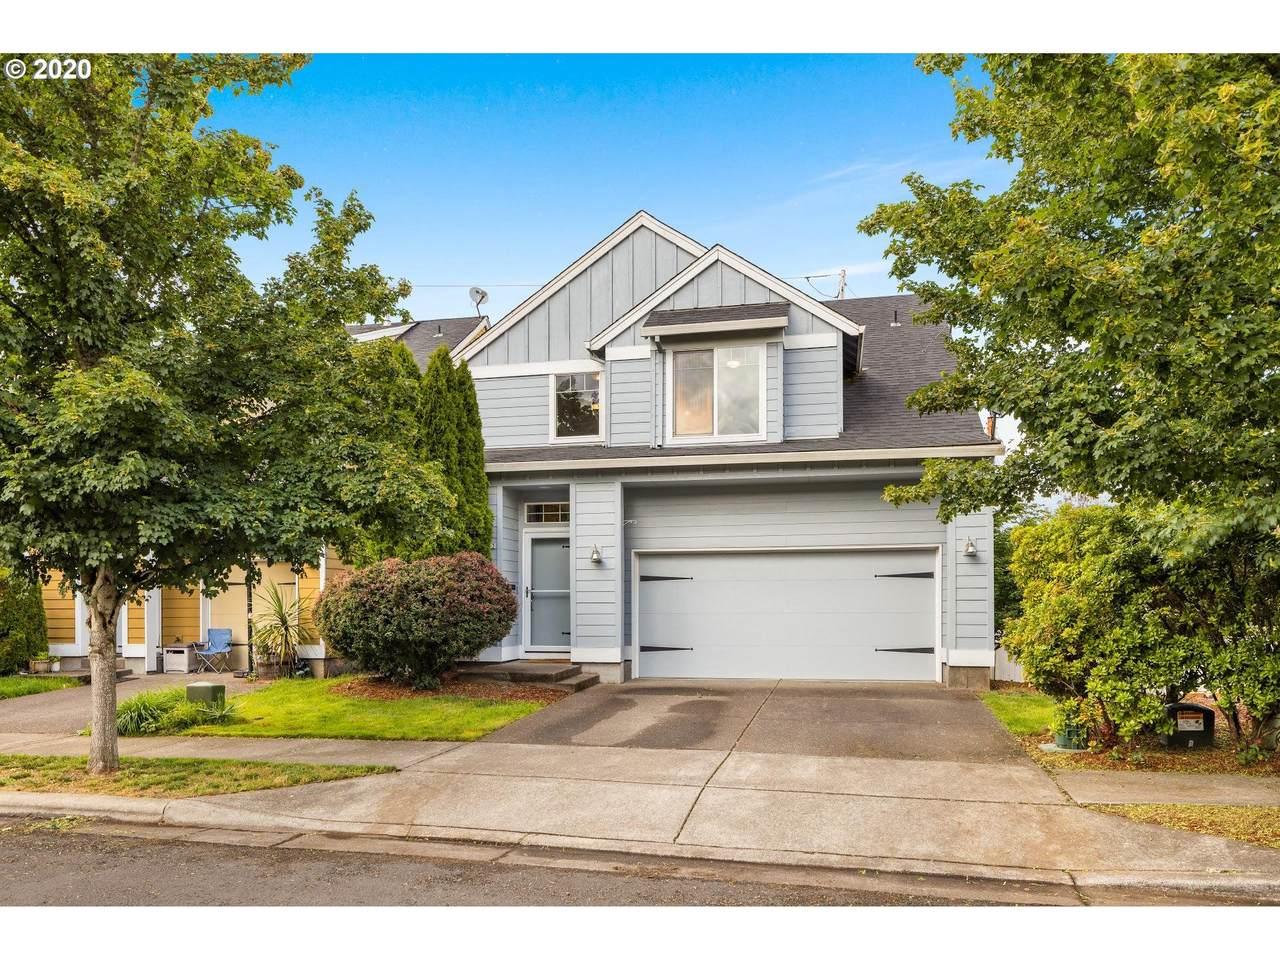 20733 Painted Mountain Dr - Photo 1